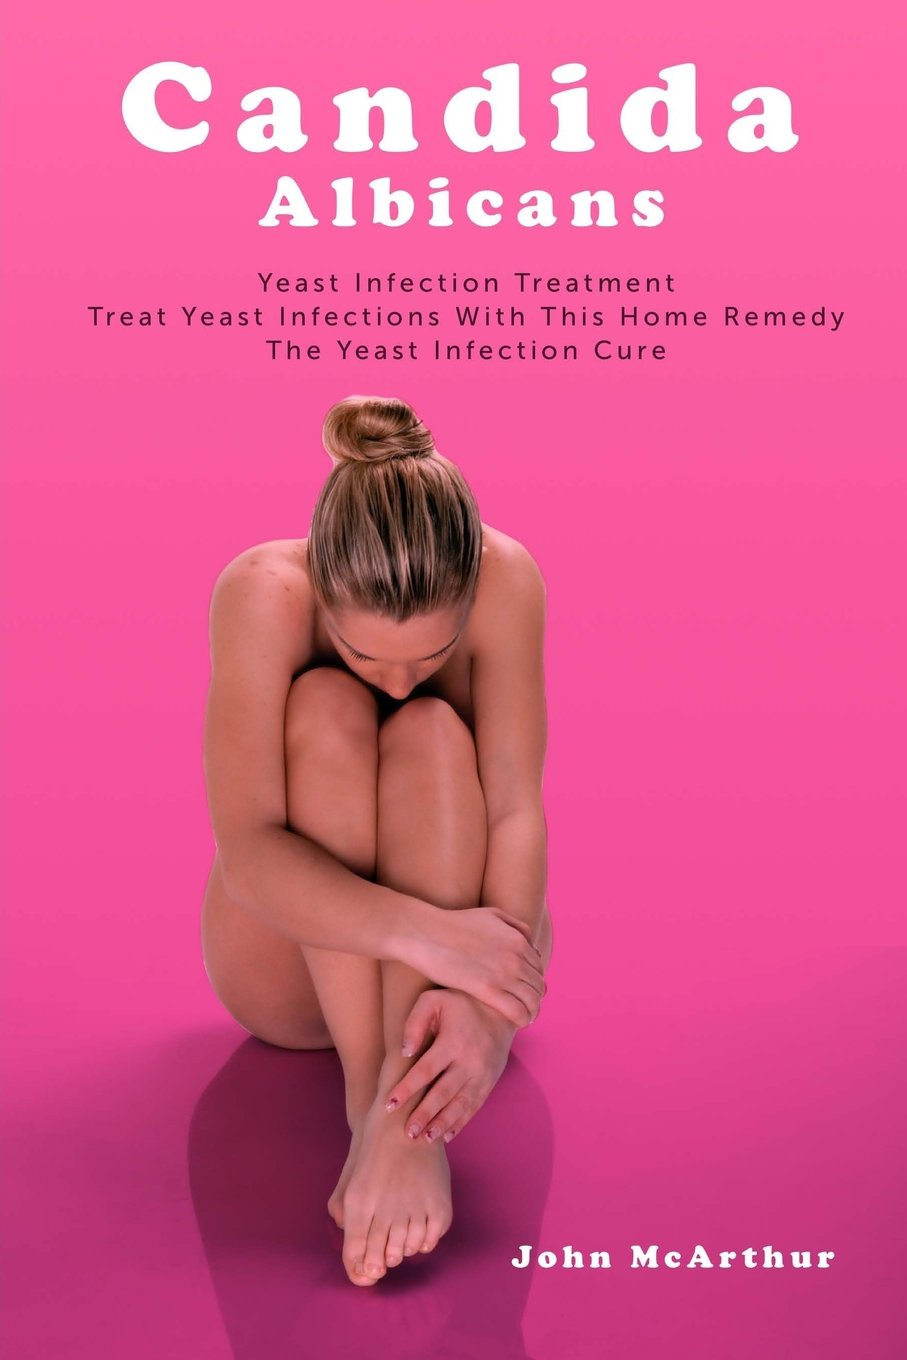 Candida Albicans Infection Treatment Infections product image